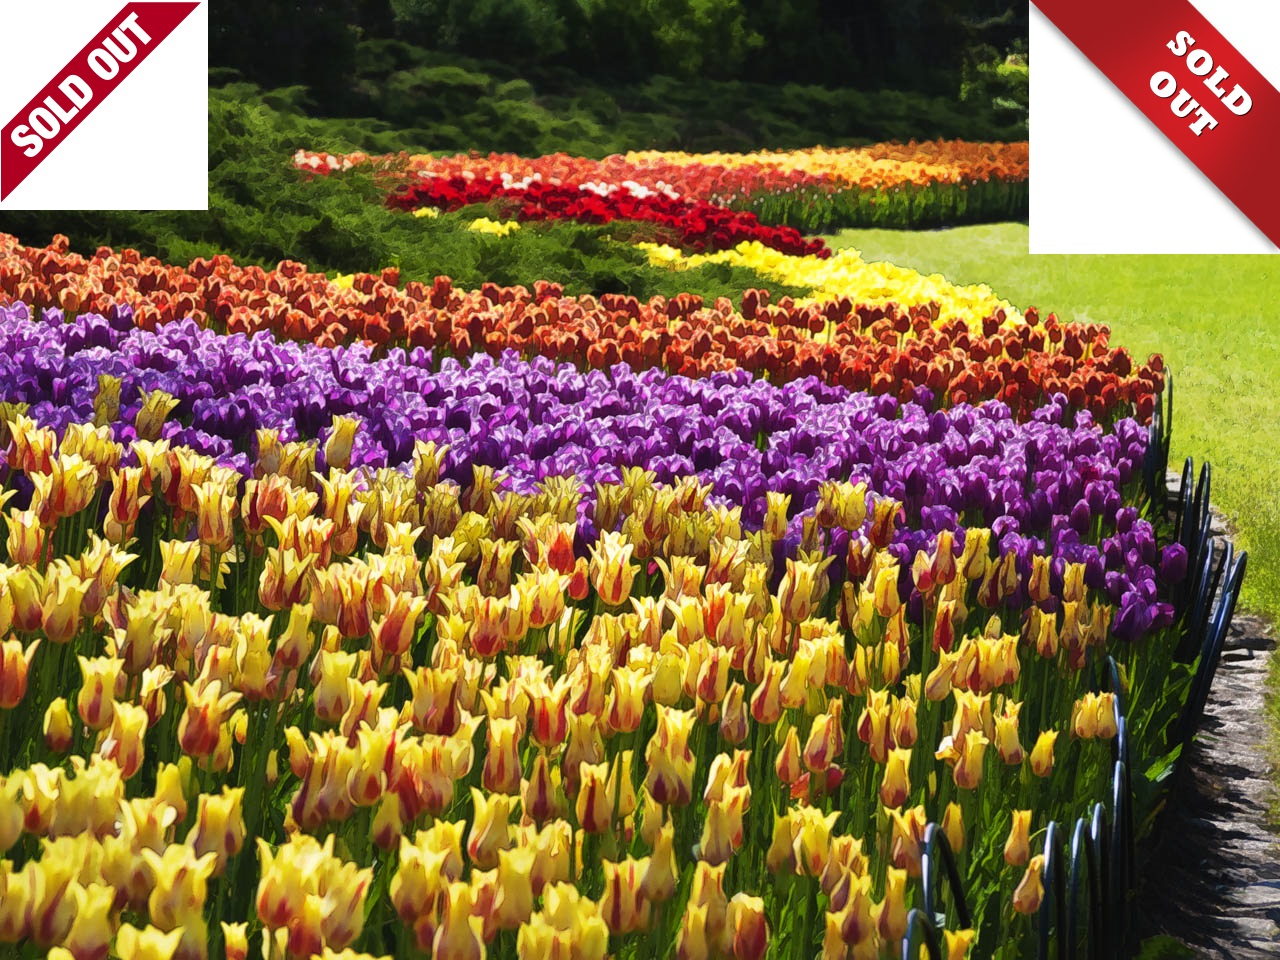 Canadian Tulip Festival Tour - Ottawa (May 20 & 21) SOLD OUT